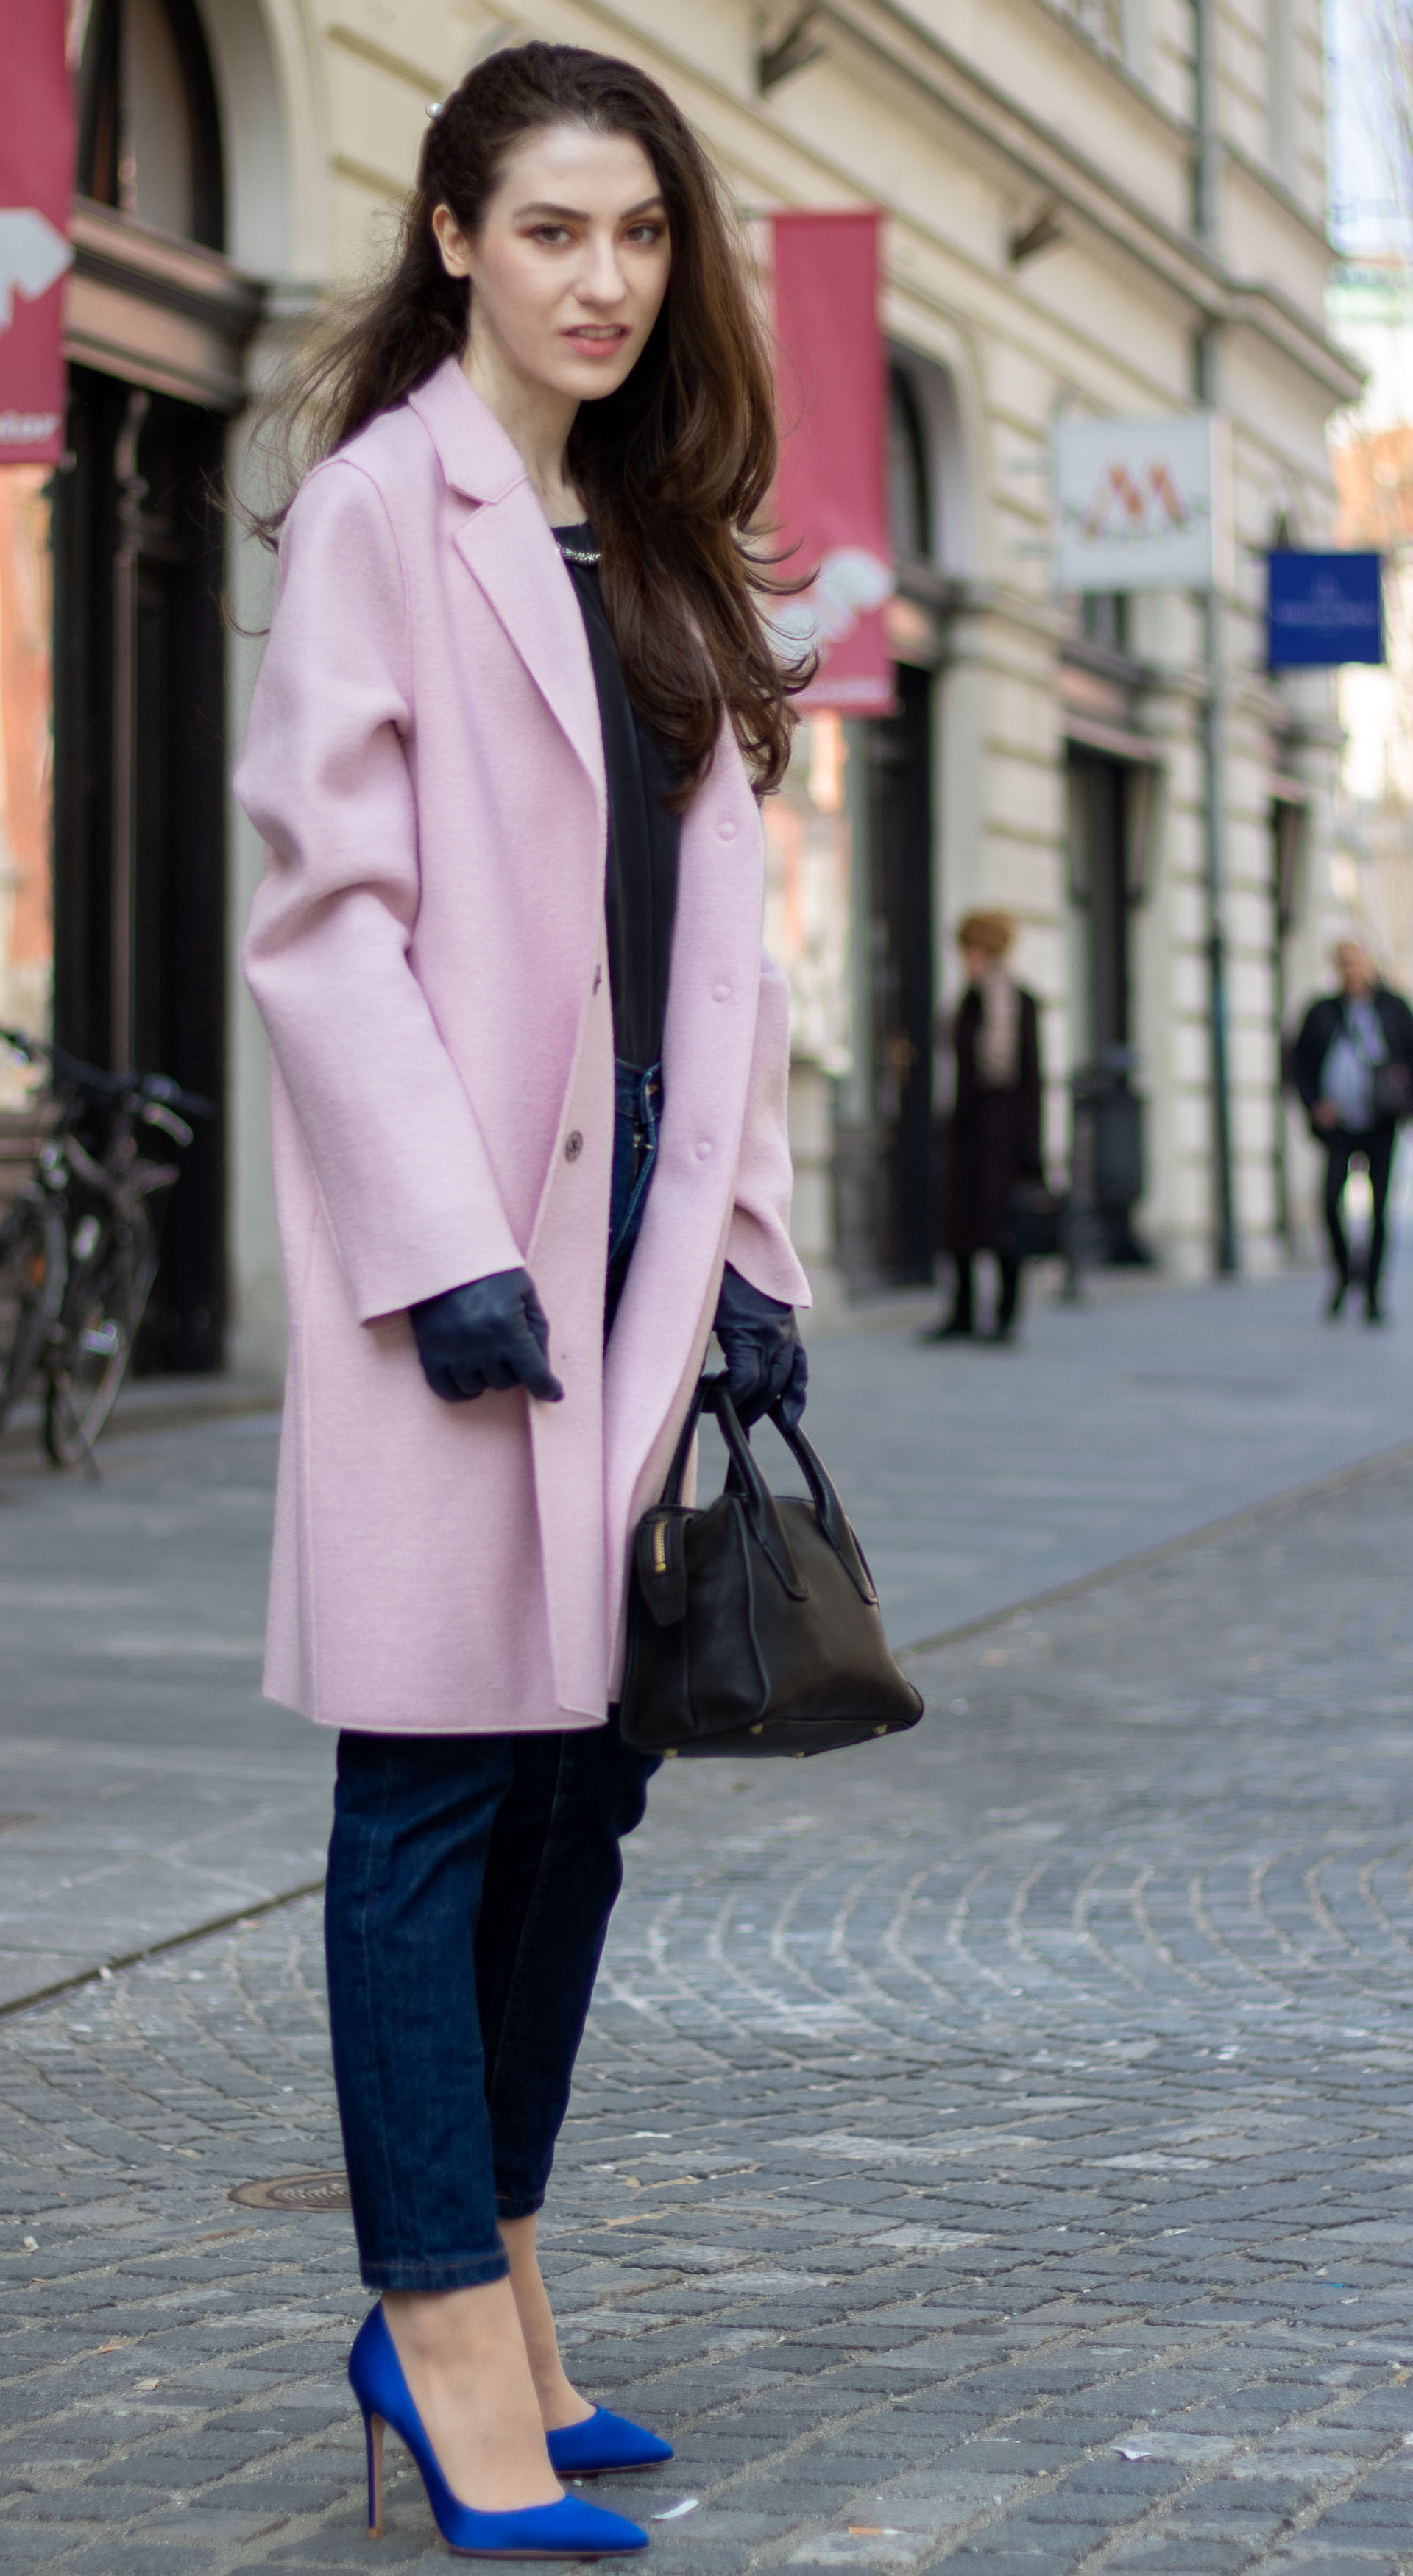 Must follow Fashion Blogger Veronika Lipar of Brunette from Wall Street wearing loose pink Harris Wharf London coat A.P.C. Paris dark blue denim jeans Gianvito Rossi blue heels black top handle bag Forzieri blue leather gloves pearl hairpin standing on the street